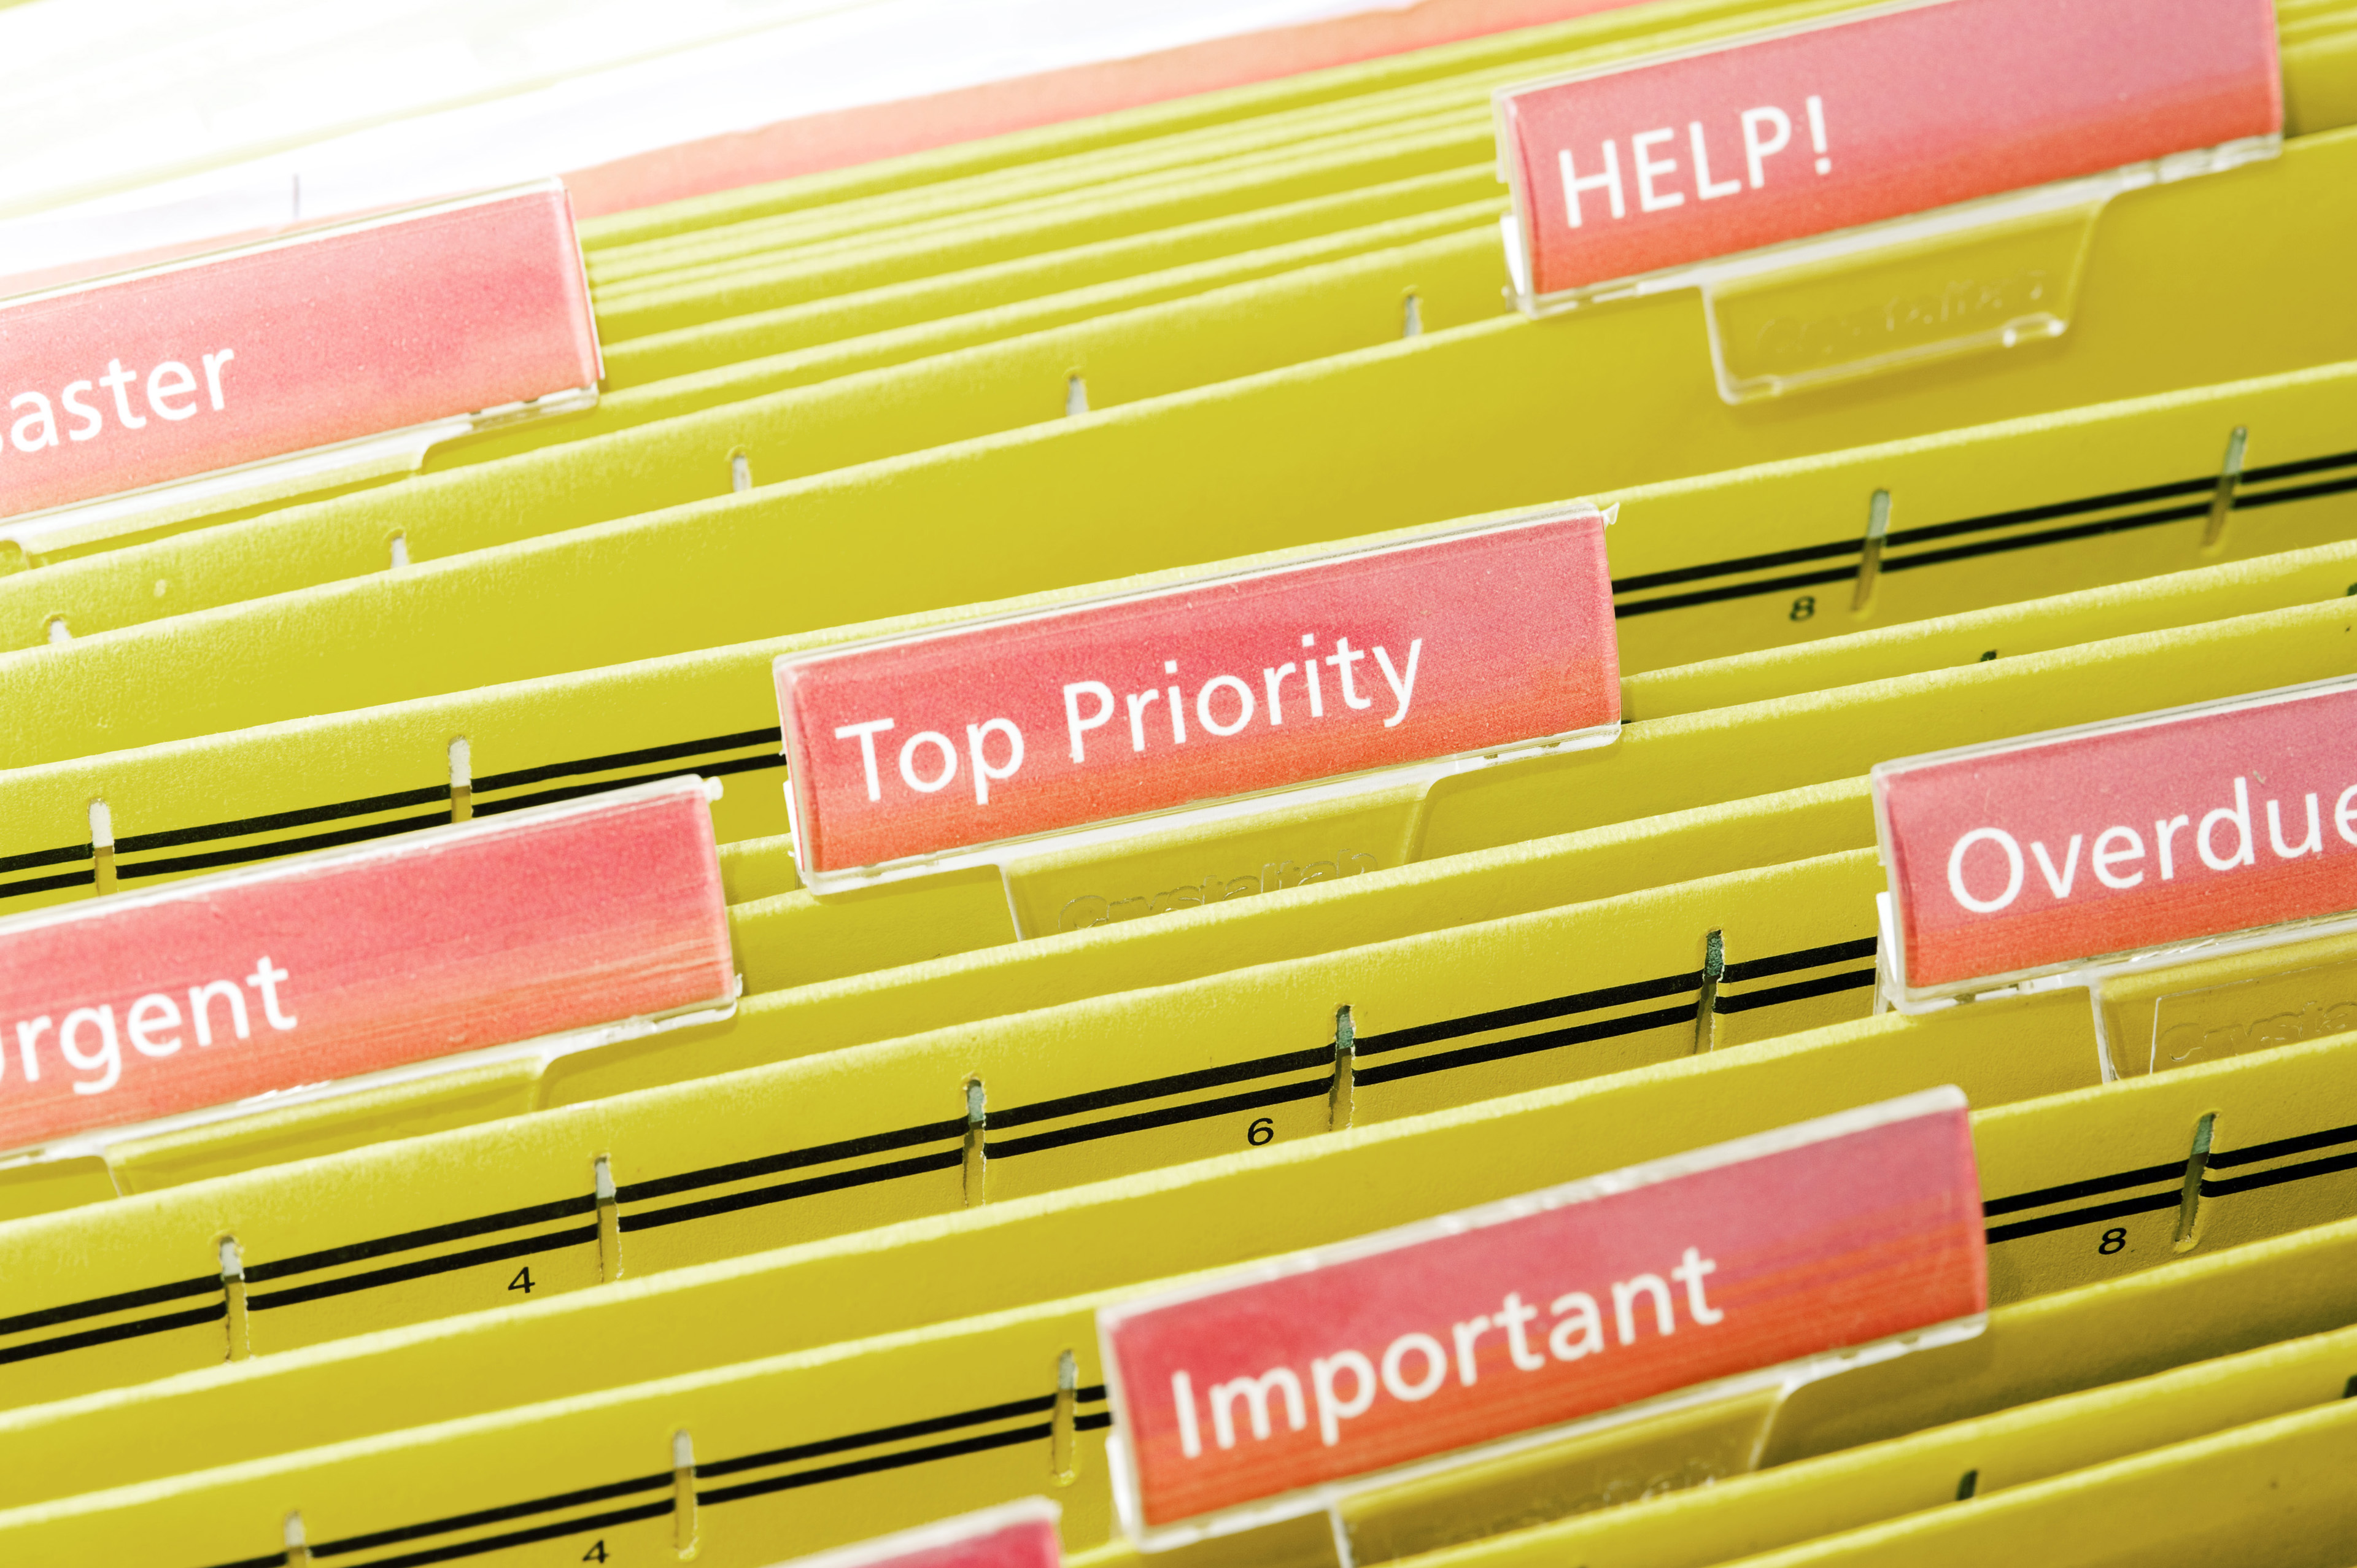 Urgent Tasks Concept - Priority Files on Yellow Folders Inside a Shelf with Pink Labels